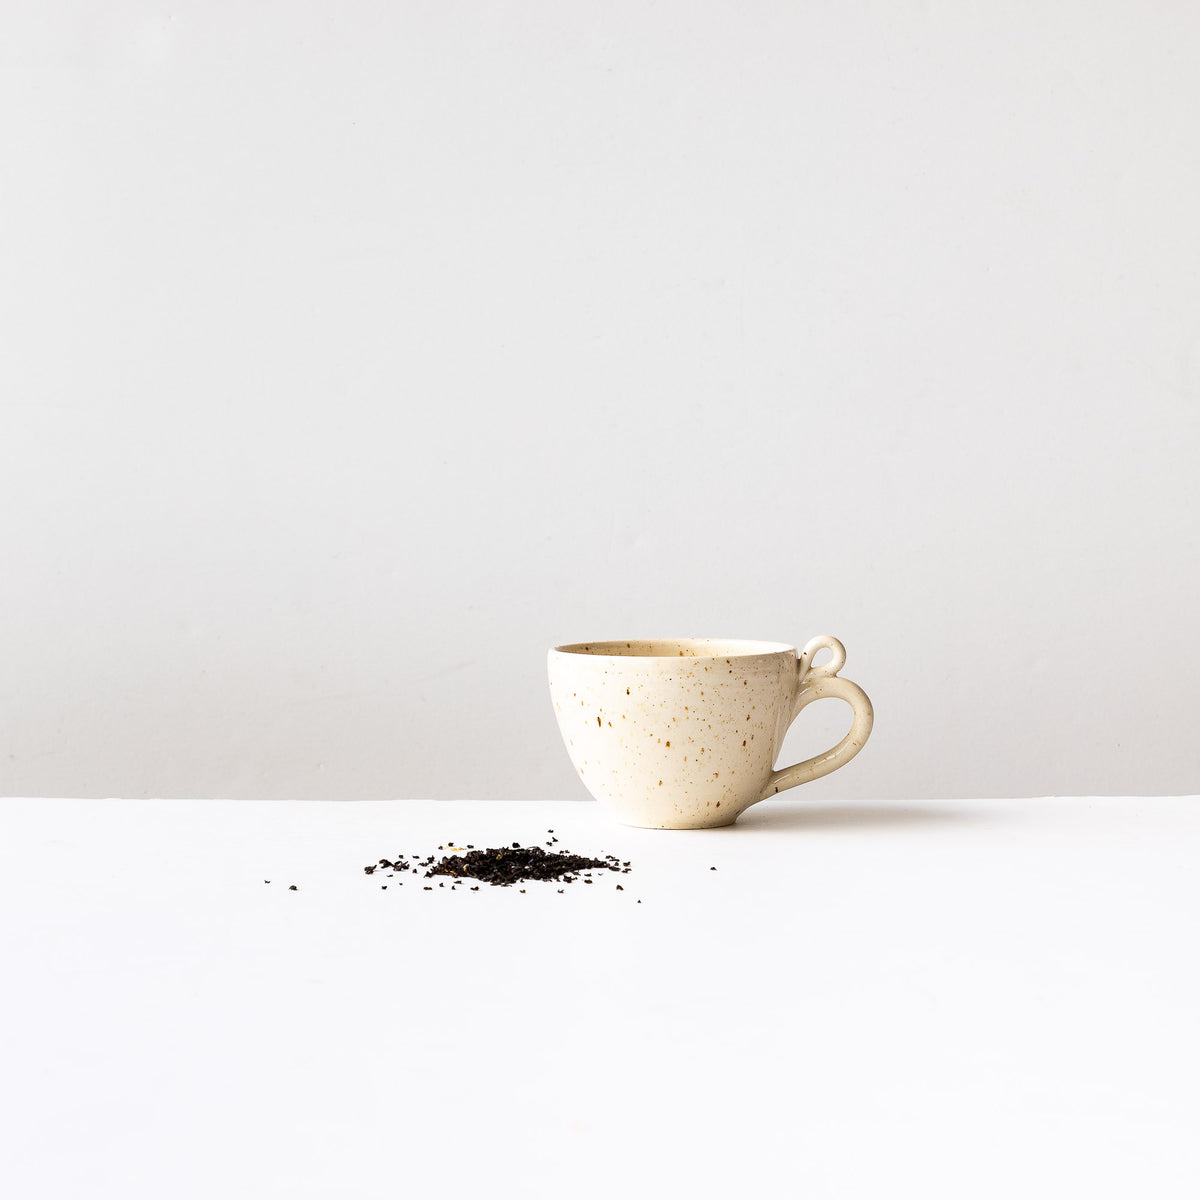 Swan - Handmade Stoneware Cappuccino / Tea Cup - Sold by Chic & Basta